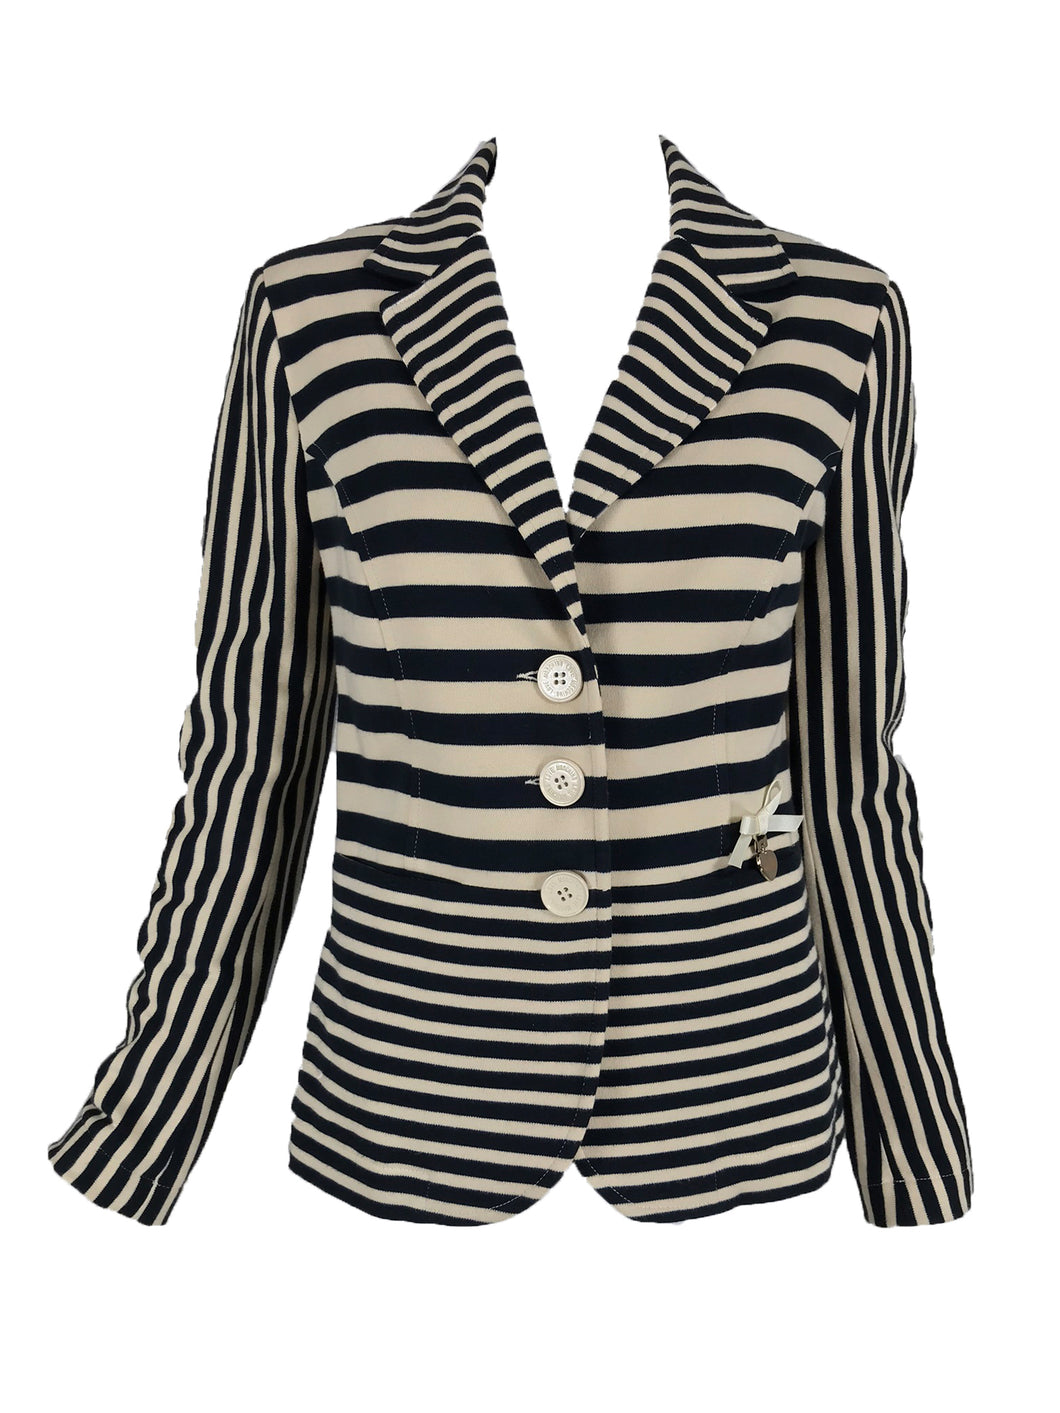 Moschino Black and Off White Stripe Jacket